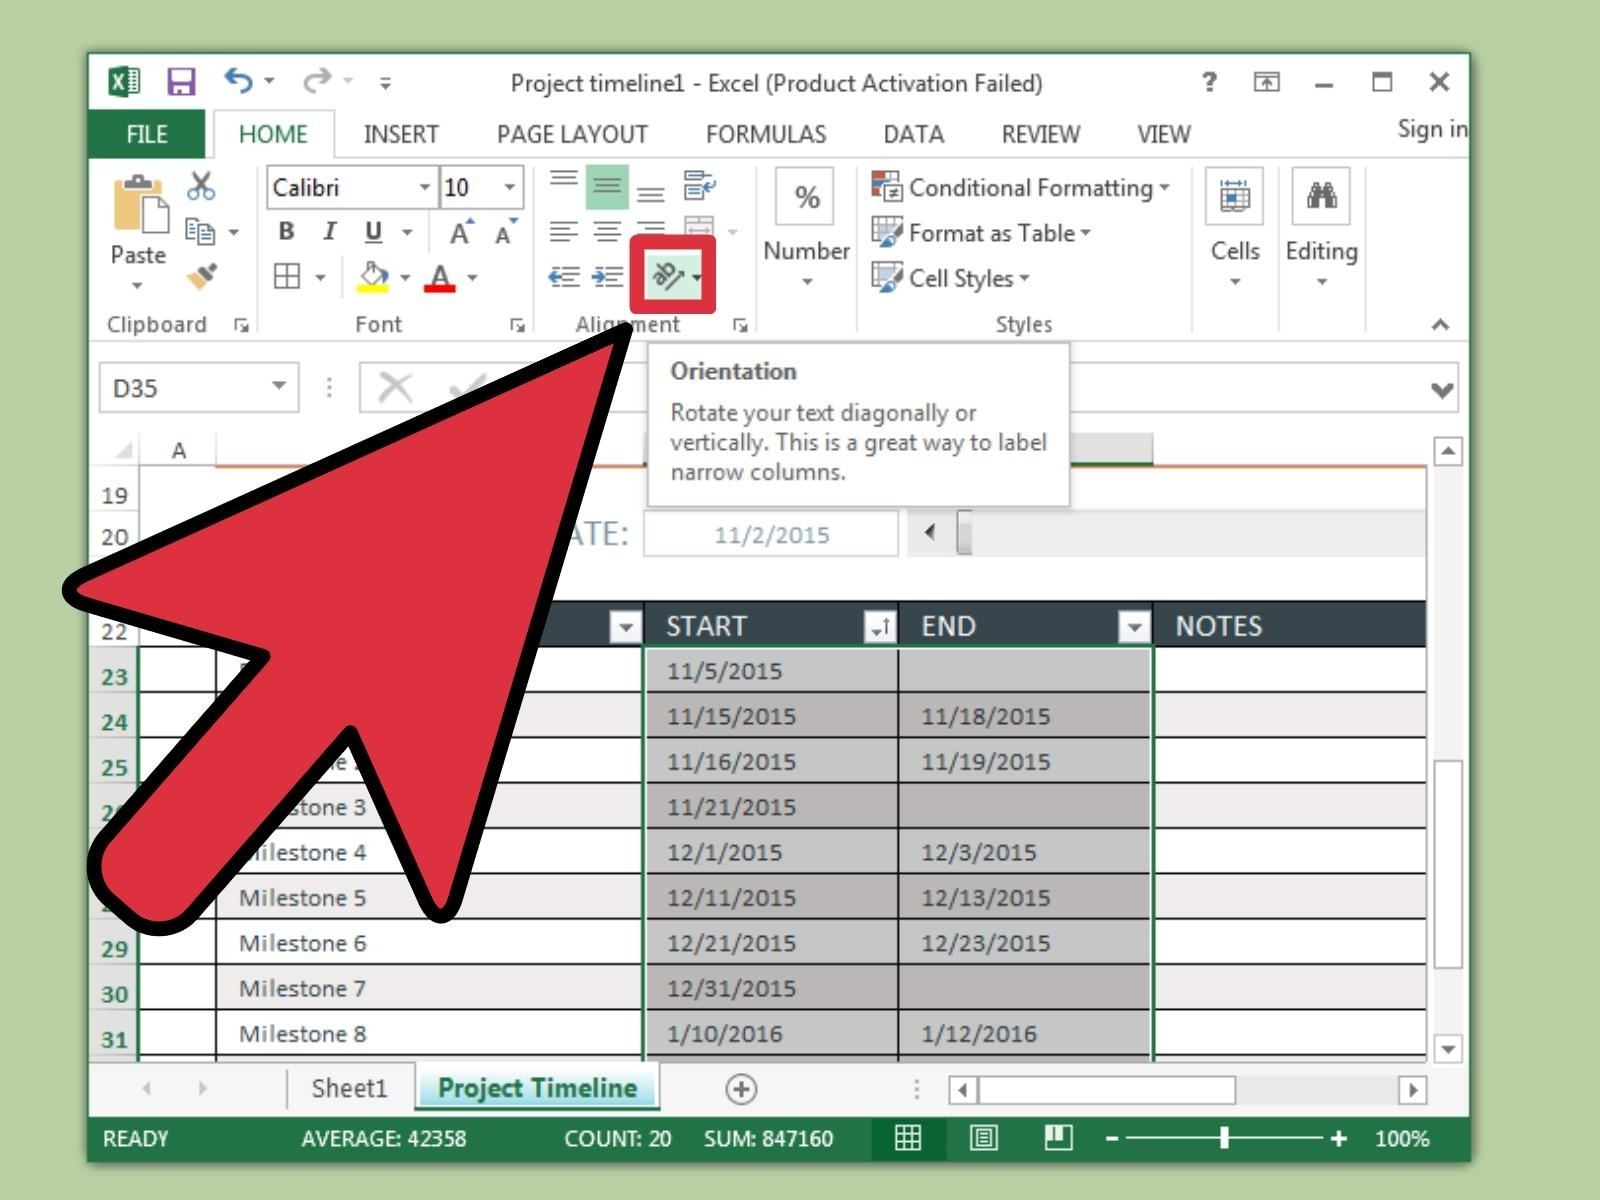 3 Ways To Create A Timeline In Excel - Wikihow_Calendar Icon In Excel